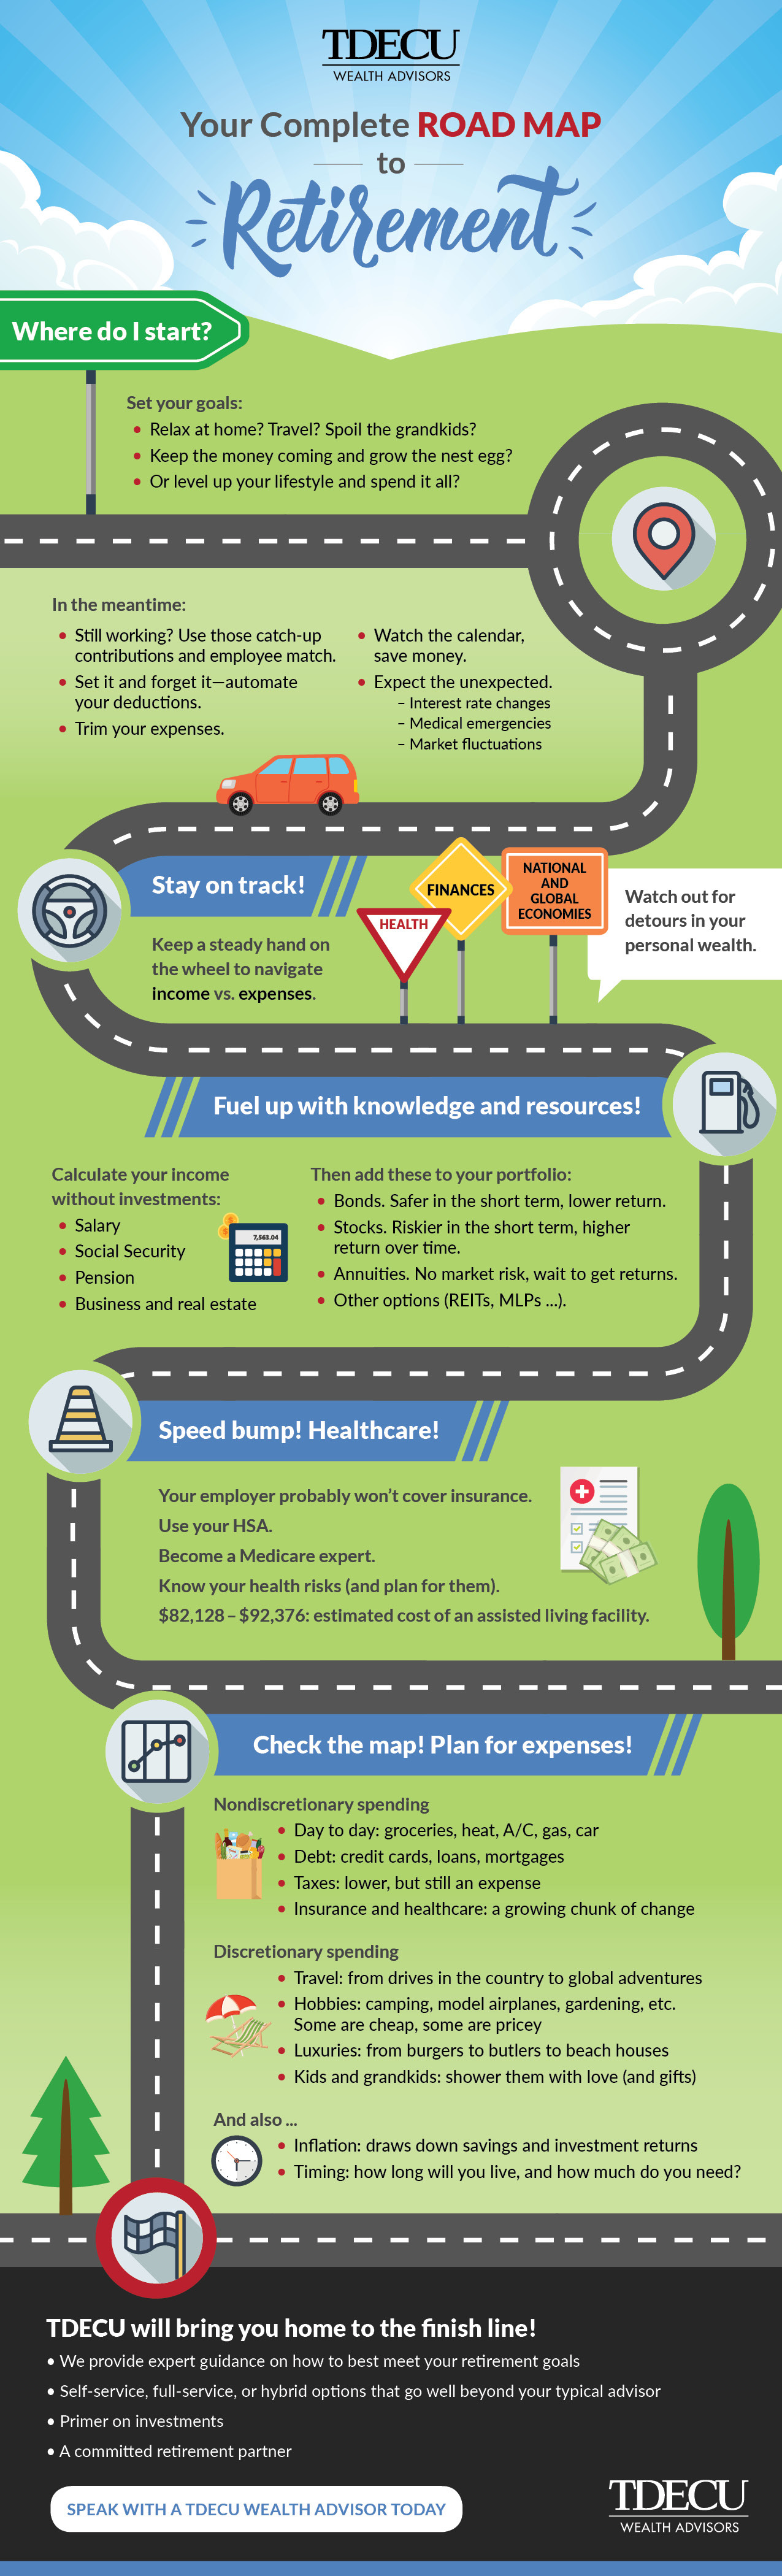 Infographic: Road Map to Retirement